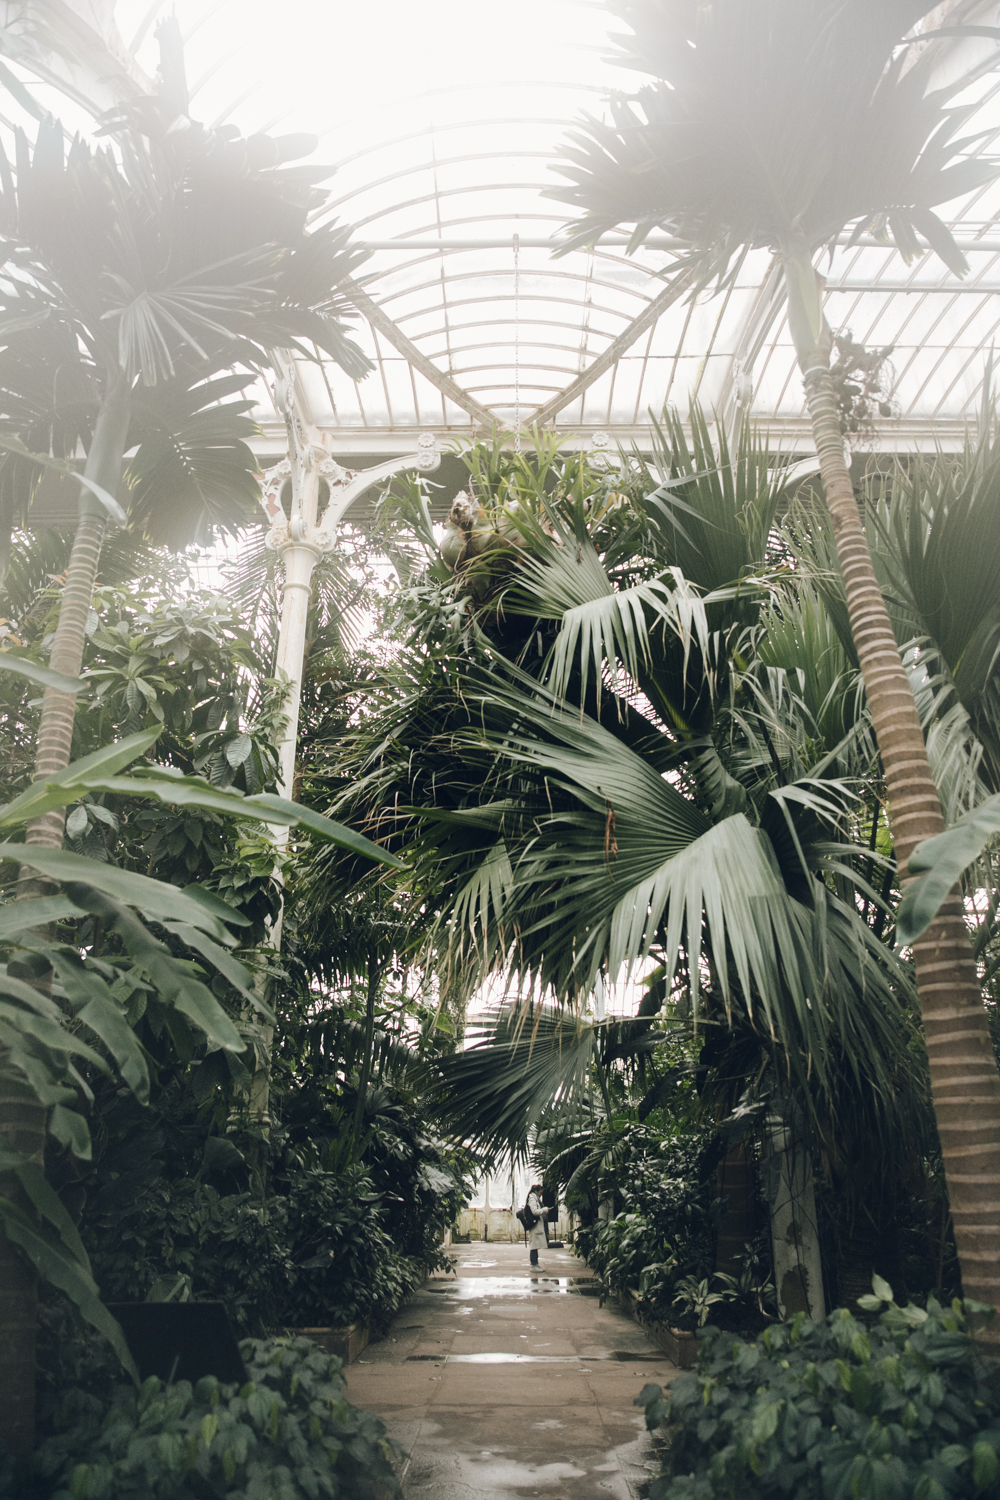 Haarkon Kew Gardens Palmhouse Palm Temperate Glasshouse Greenhouse Plants Greenery London Visit Person Tourist